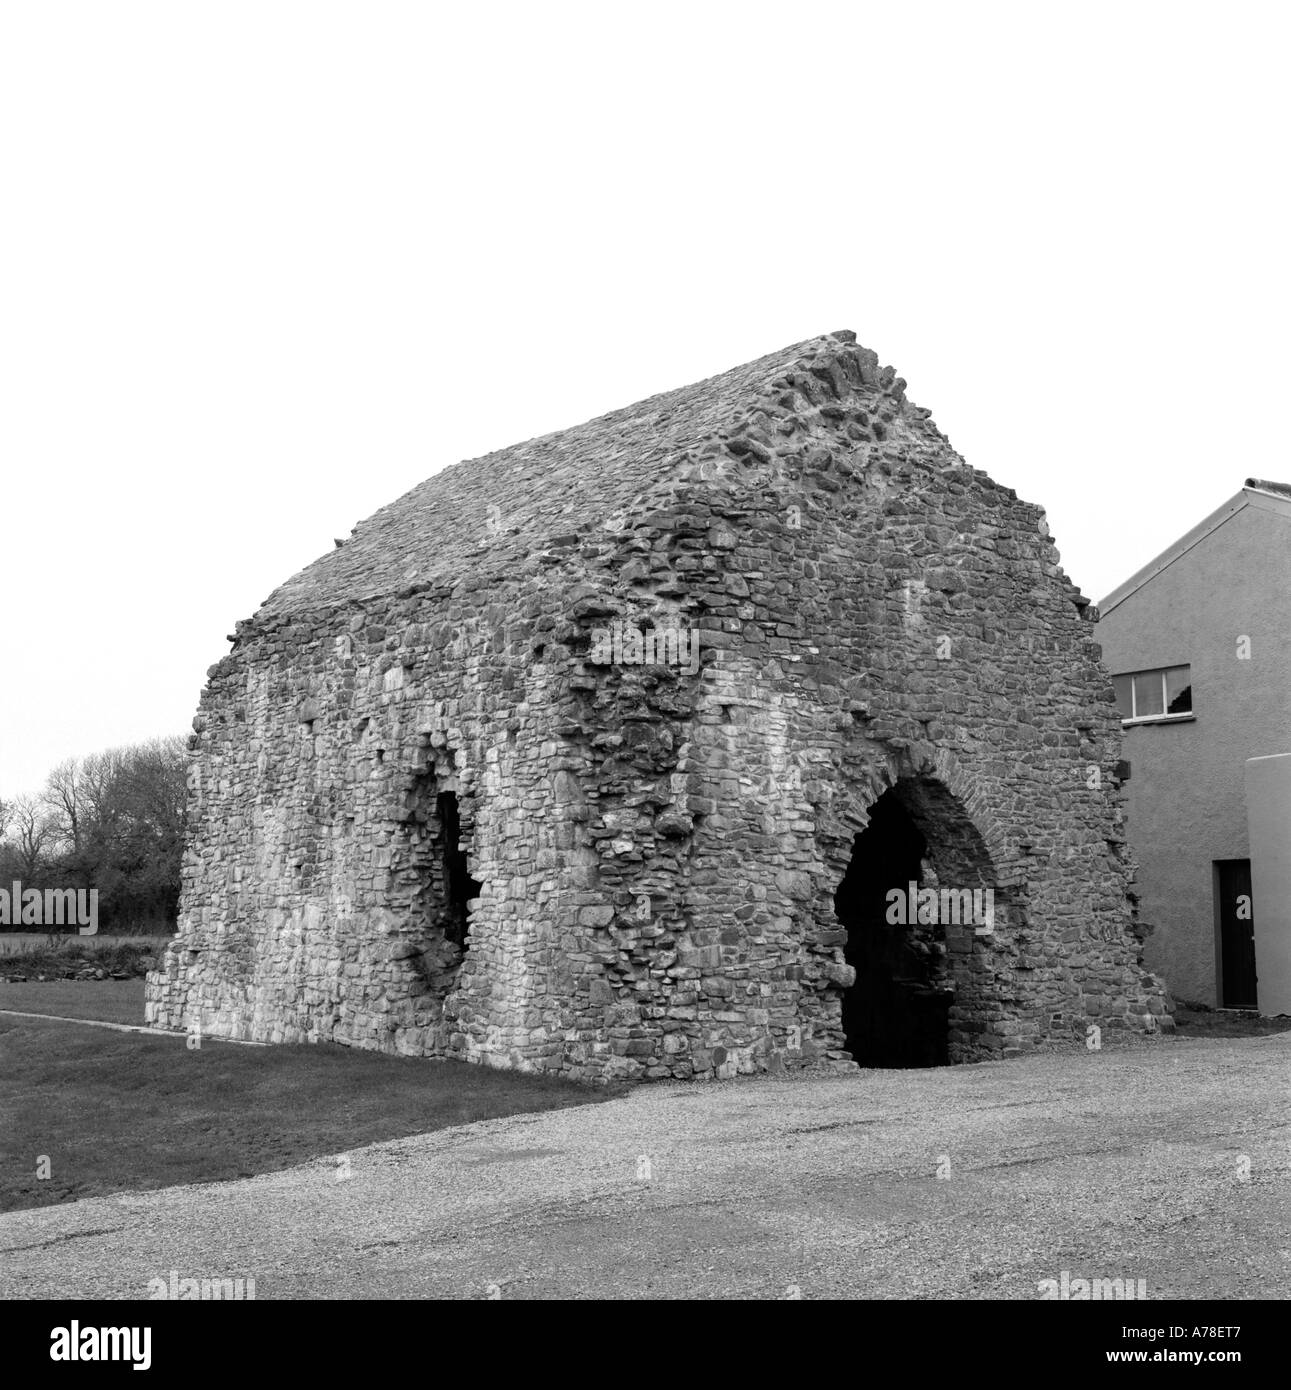 Pilgrim shelter and early hospital structure with a stone roof near Narberth, Pembrokeshire, Wales, UK  KATHY DEWITT - Stock Image